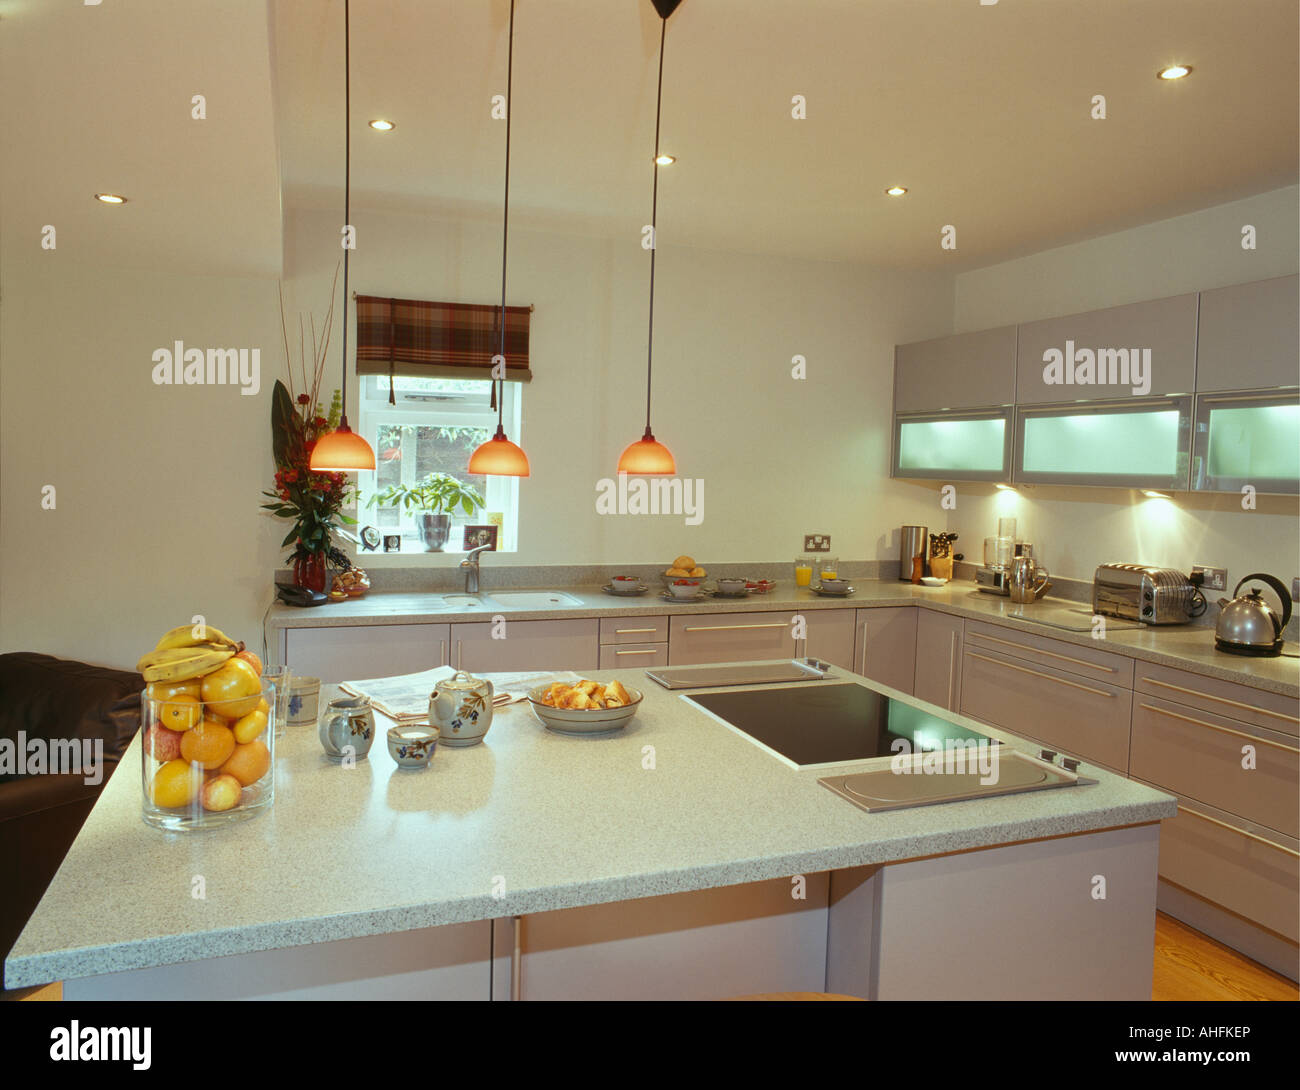 Pendant Lights Over Island Unit With Halogen Hob And